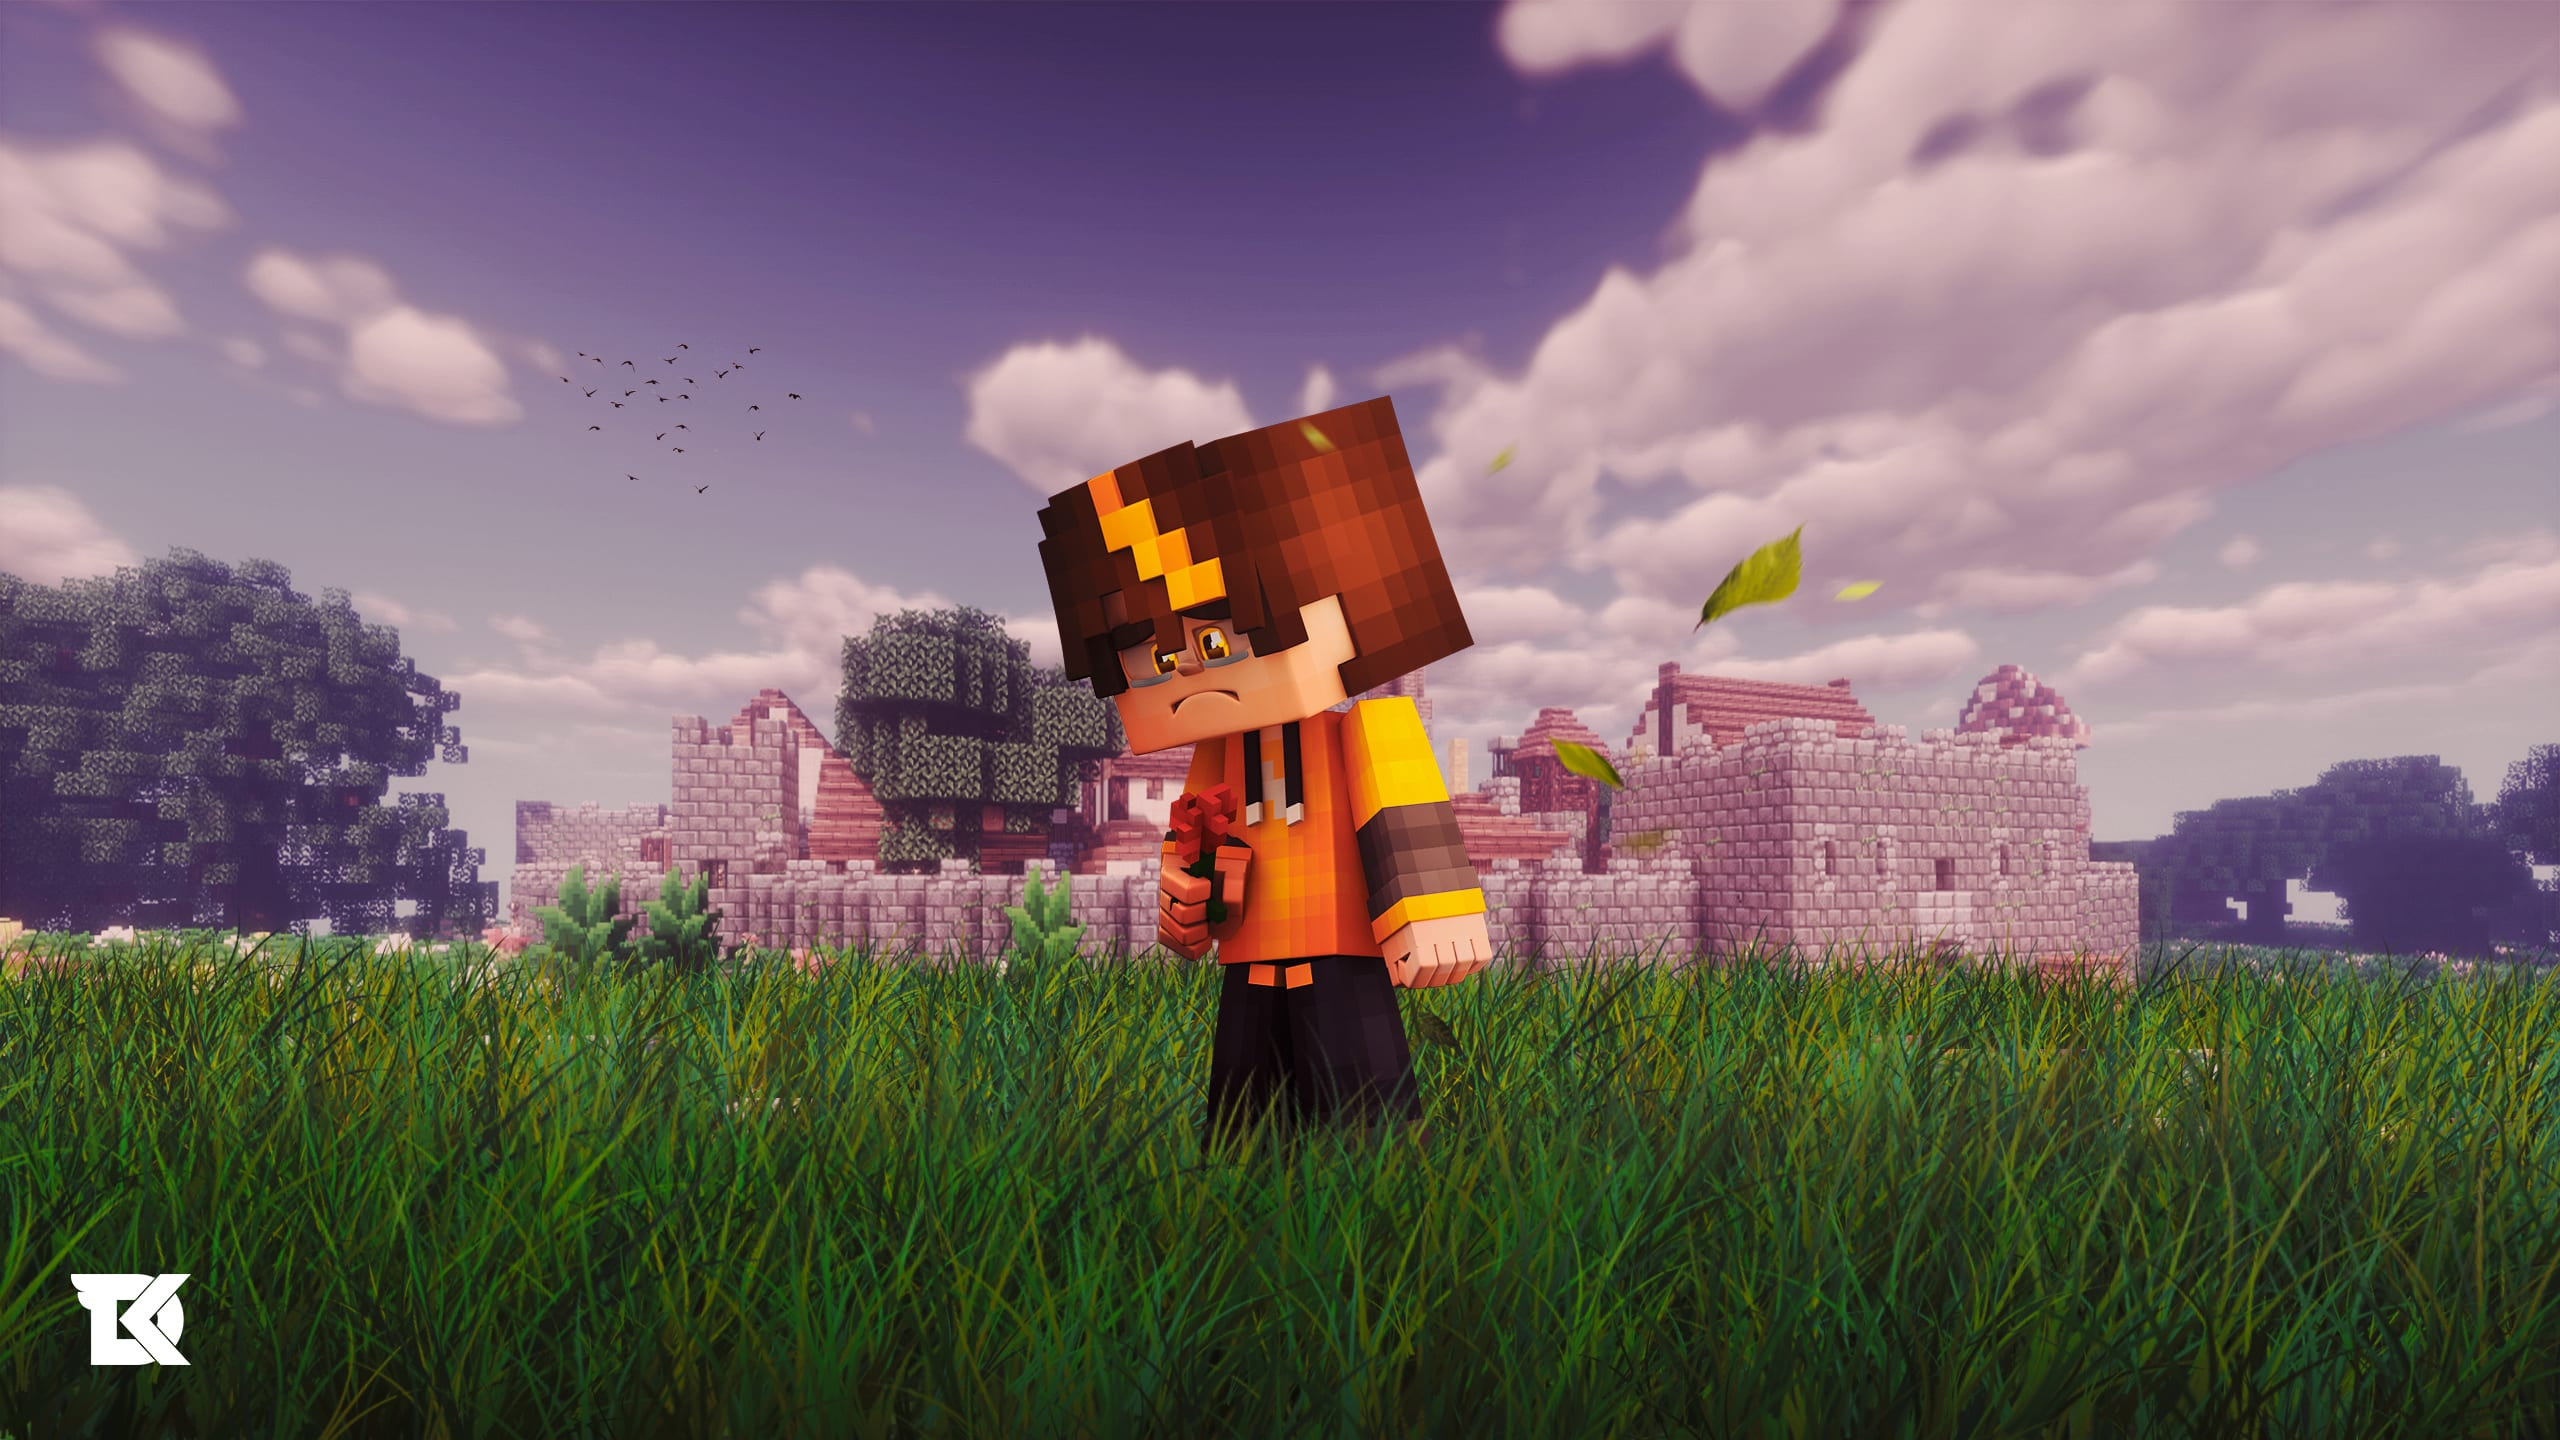 Design An Epic Minecraft Wallpaper Within 24 Hours By Dikefx